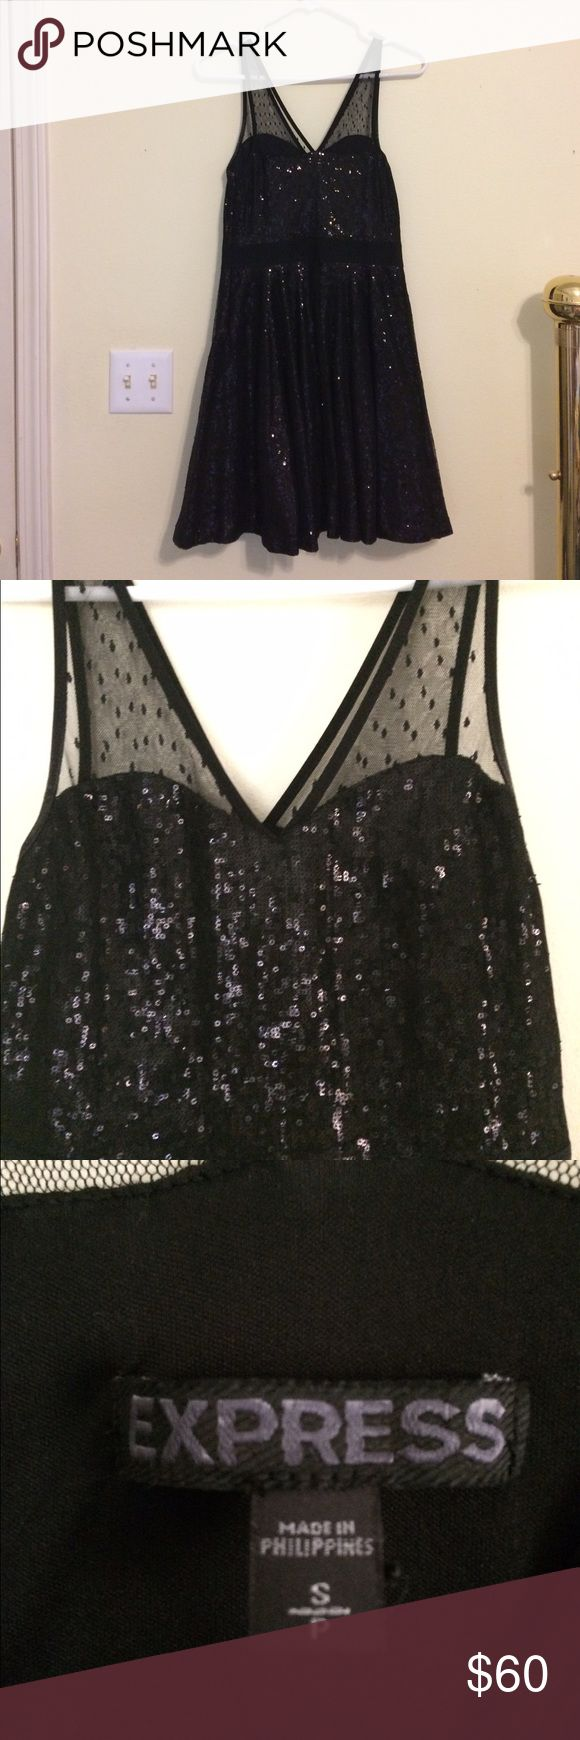 Express Black Sequin Dress, small Black sequin dress from Express with elastic stretch waistband and sheet polka dot shoulder straps. Size small. Perfect condition Express Dresses Mini